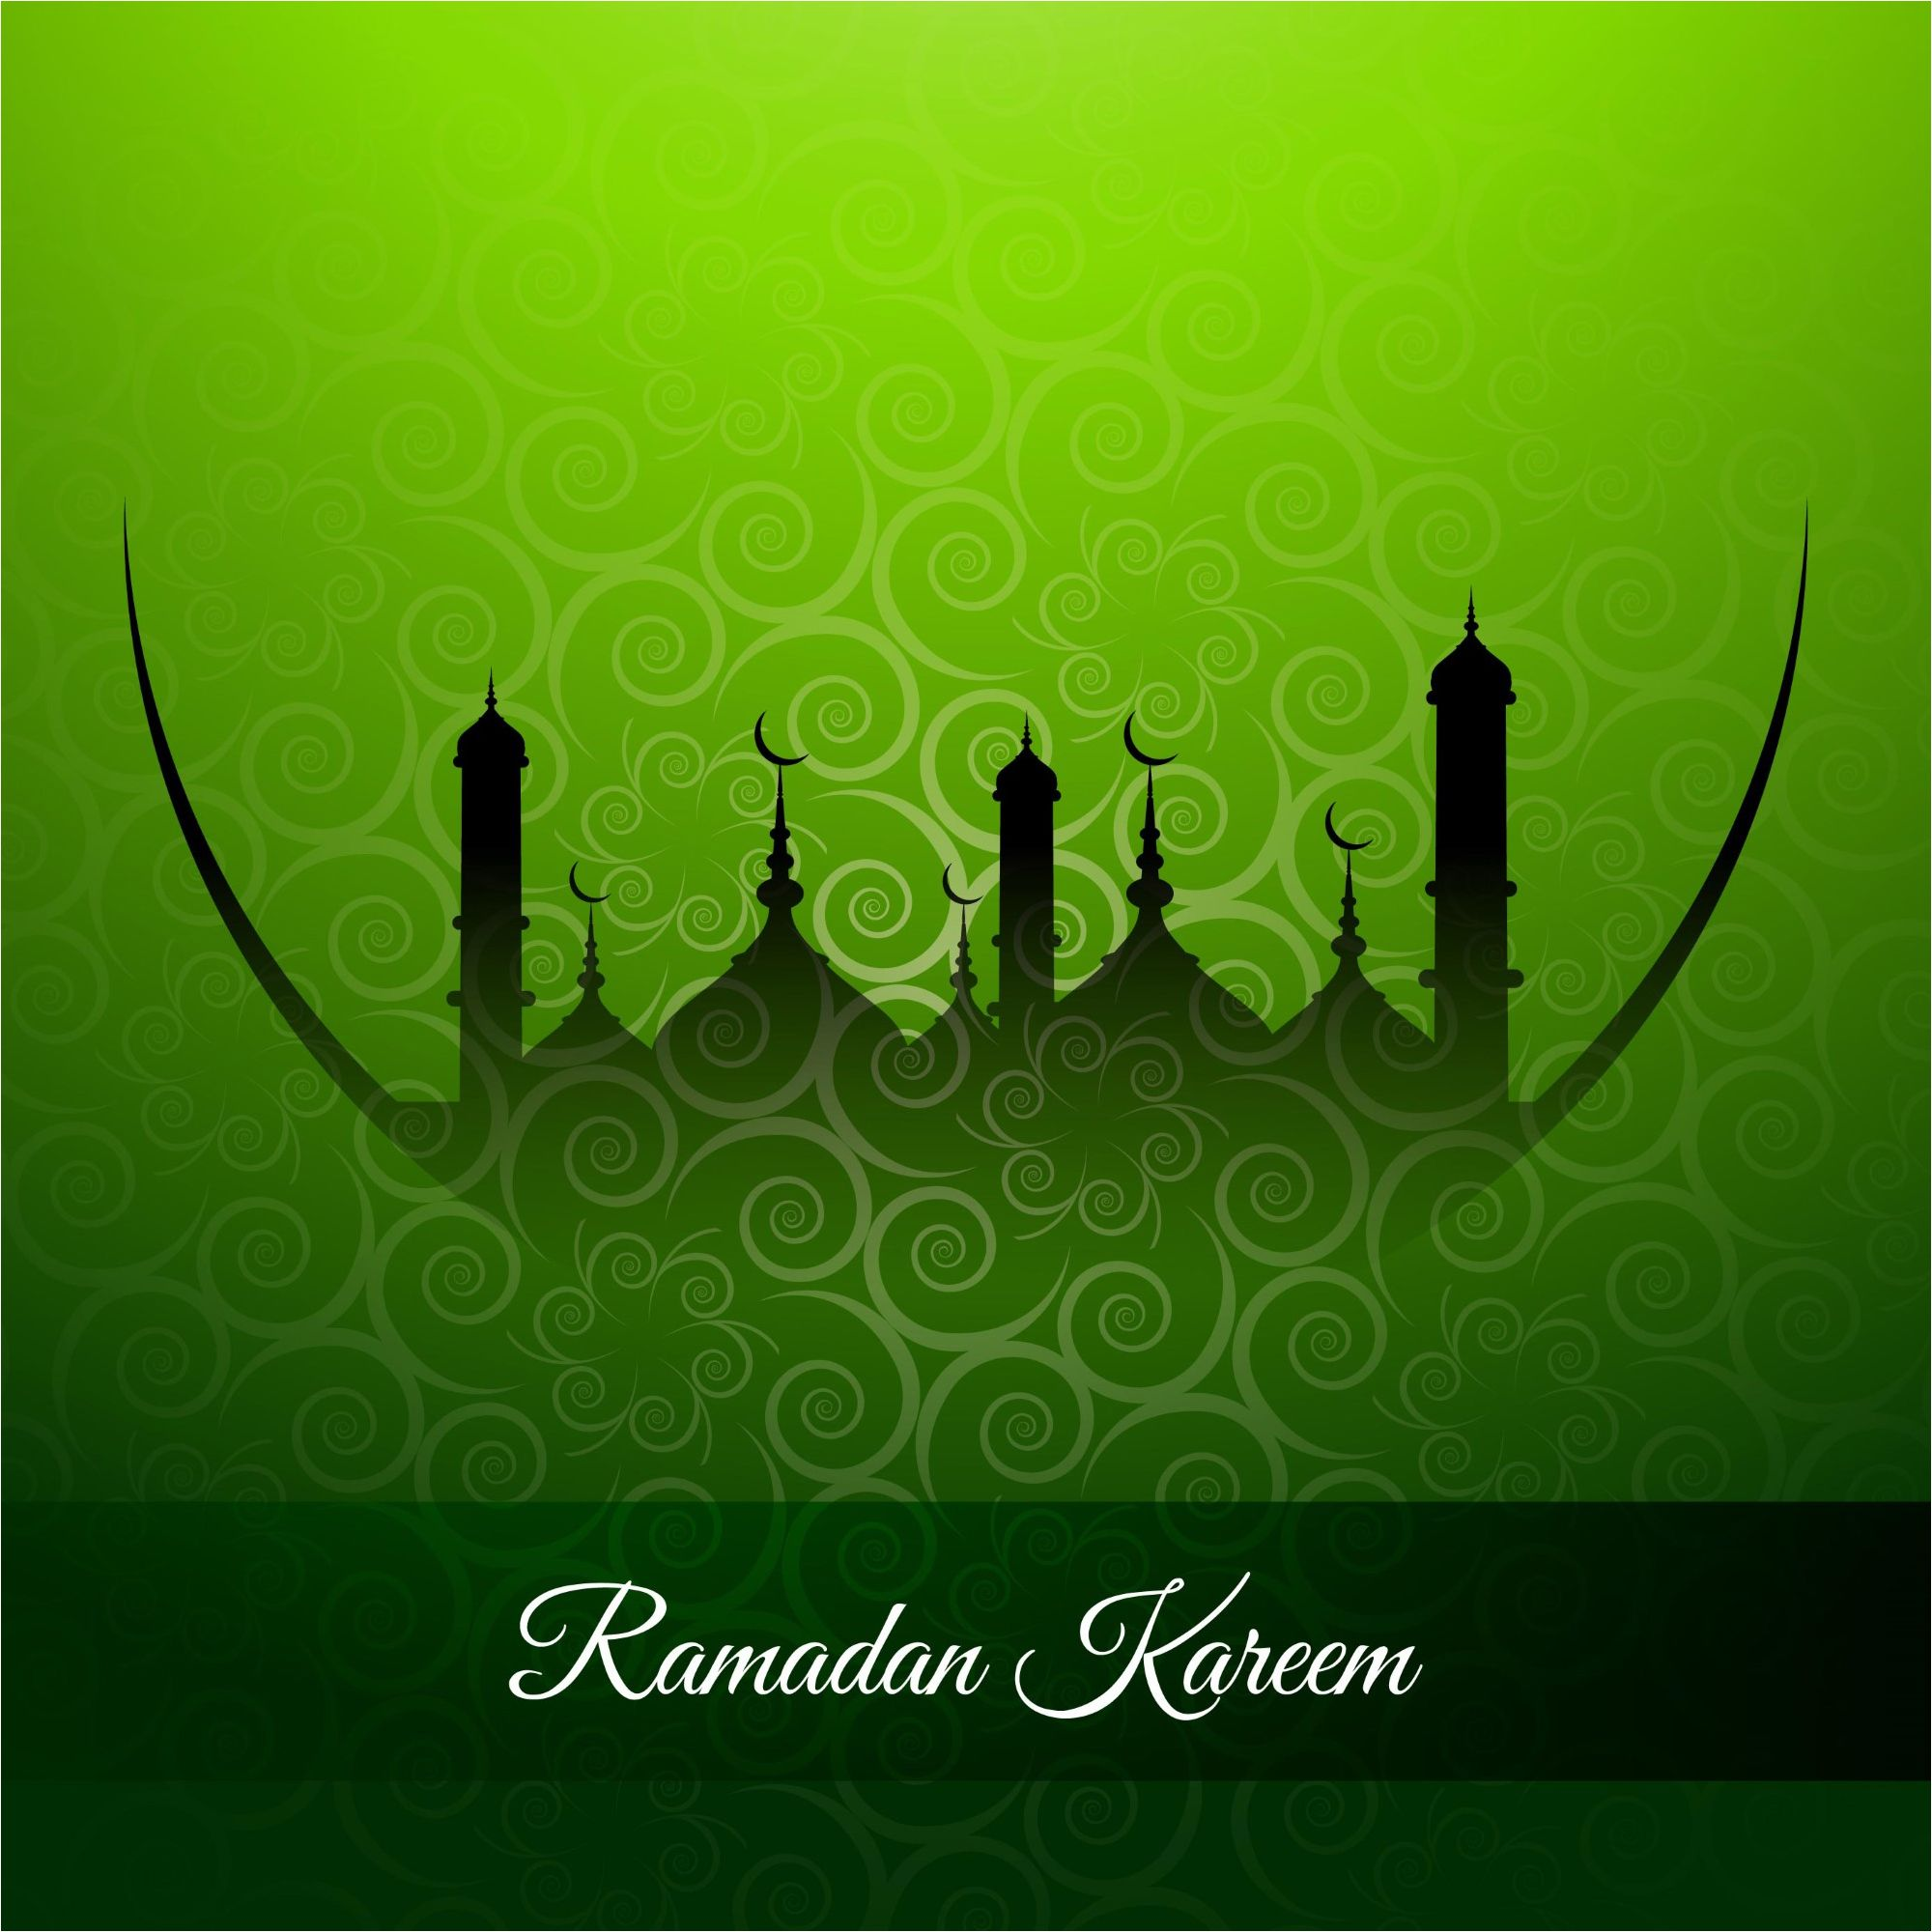 Ramadan Kareem Greeny Backround Vector Wallpaper Cgvector